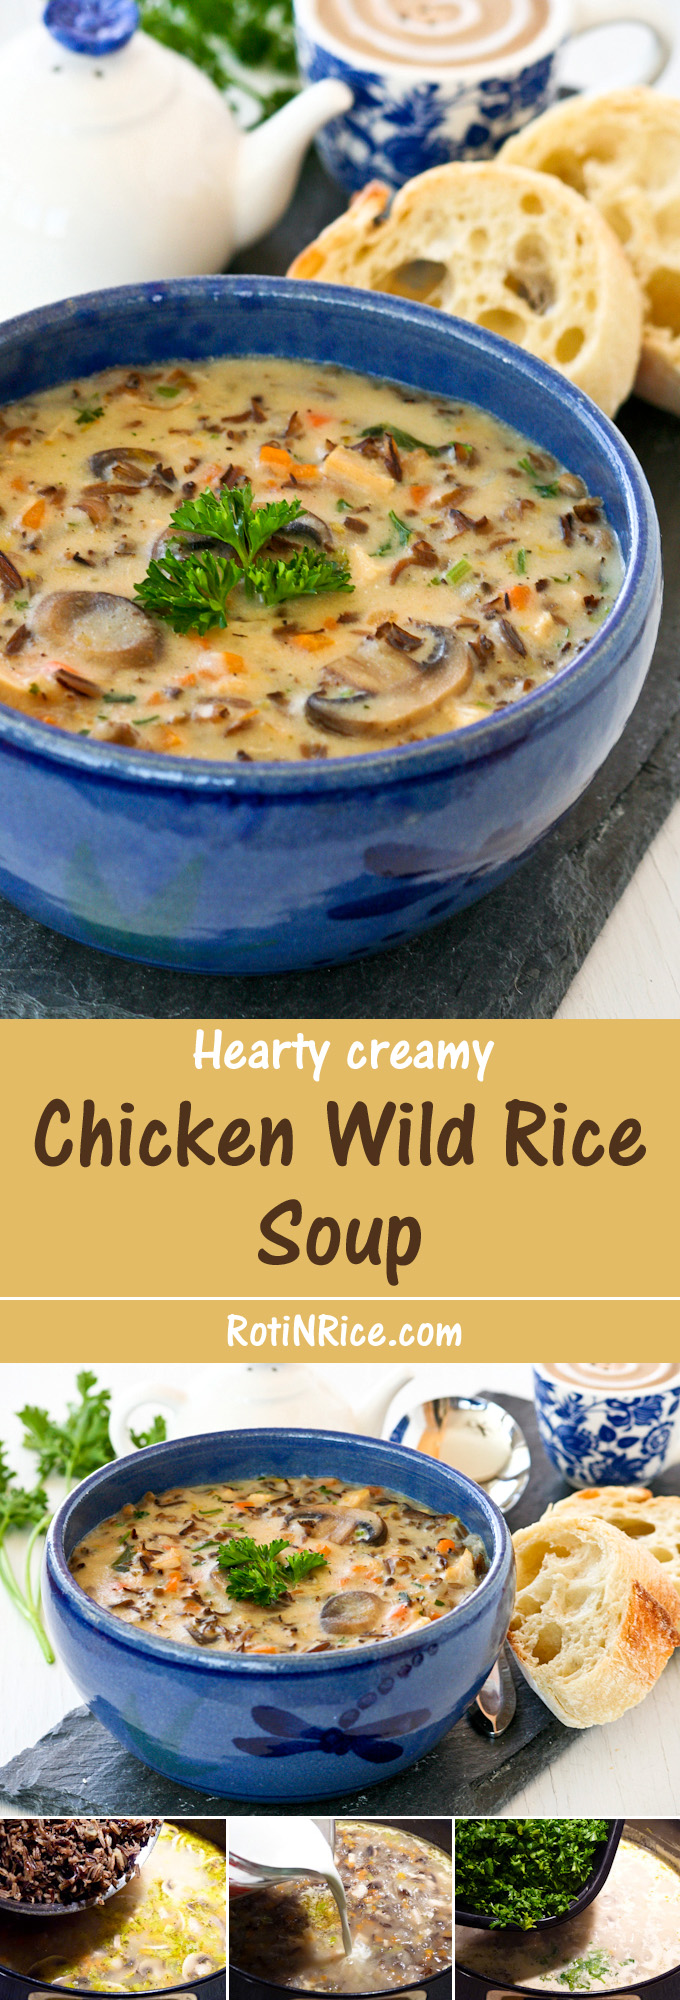 Hearty and creamy Chicken Wild Rice Soup